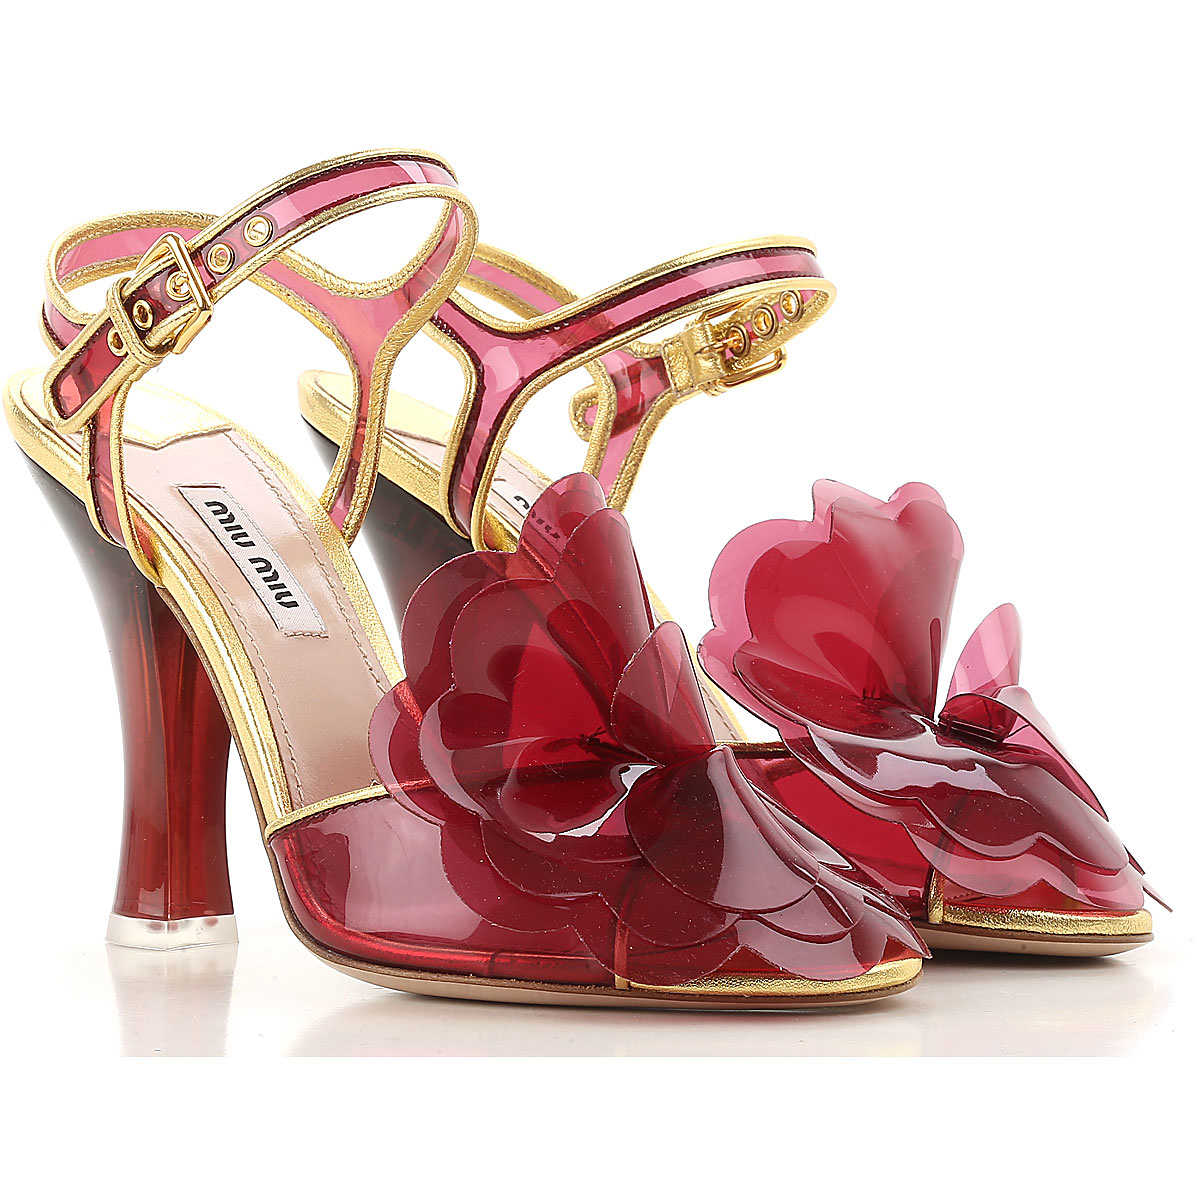 Miu Miu Sandals for Women On Sale in Outlet Ibiscus Red DK - GOOFASH - Womens SANDALS